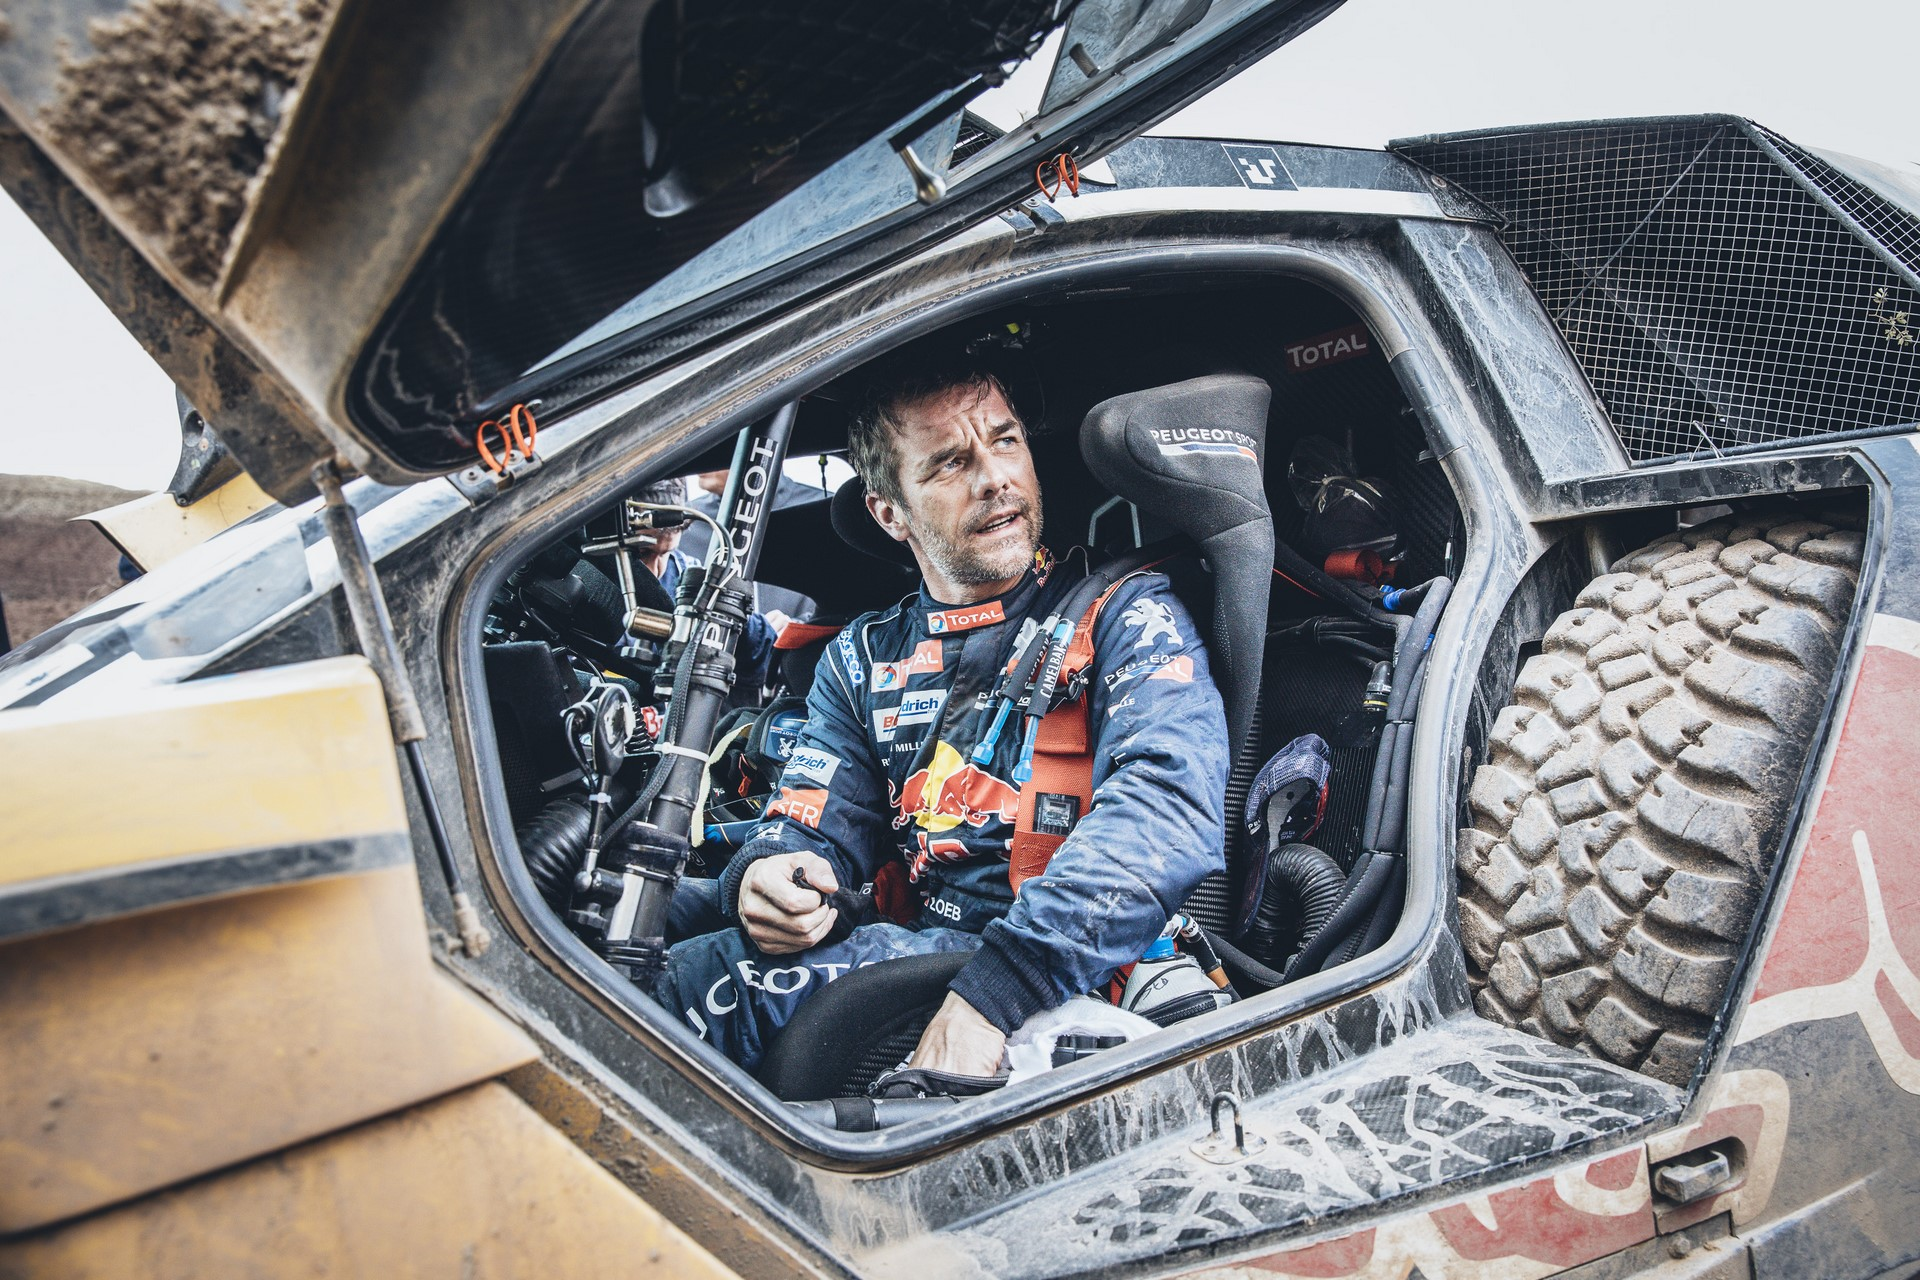 Sebastien Loeb (FRA) of Team Peugeot TOTAL at the end of the stage 3 of Rally Dakar 2017 from San Miguel de Tucuman to San Salvador de Jujuy, Argentina on January 4, 2017